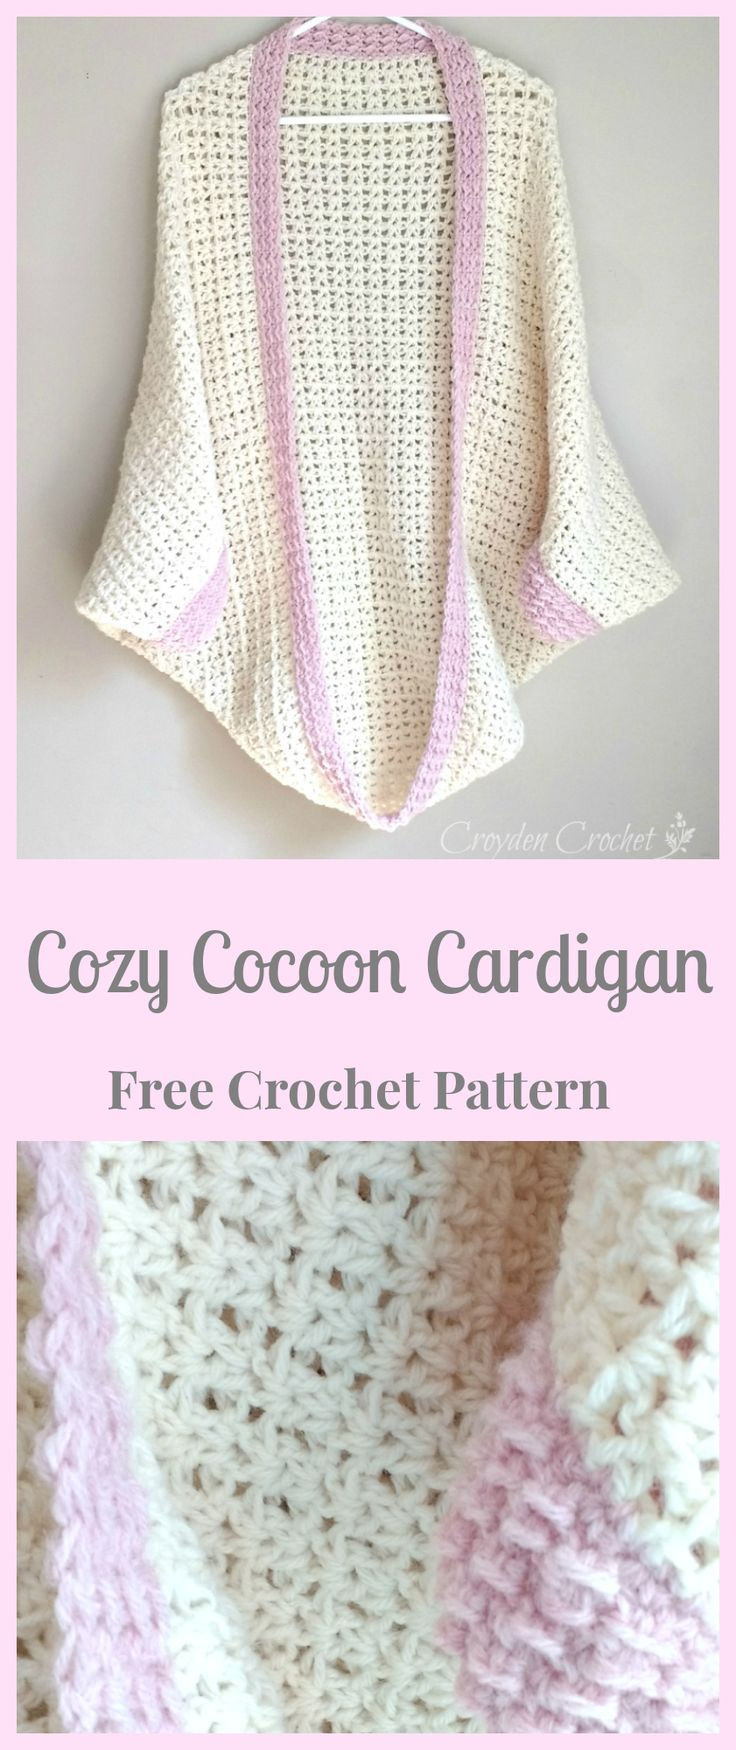 Crochet Cozy Cocoon Cardigan | Free pattern, Cocoon sweater and Crochet